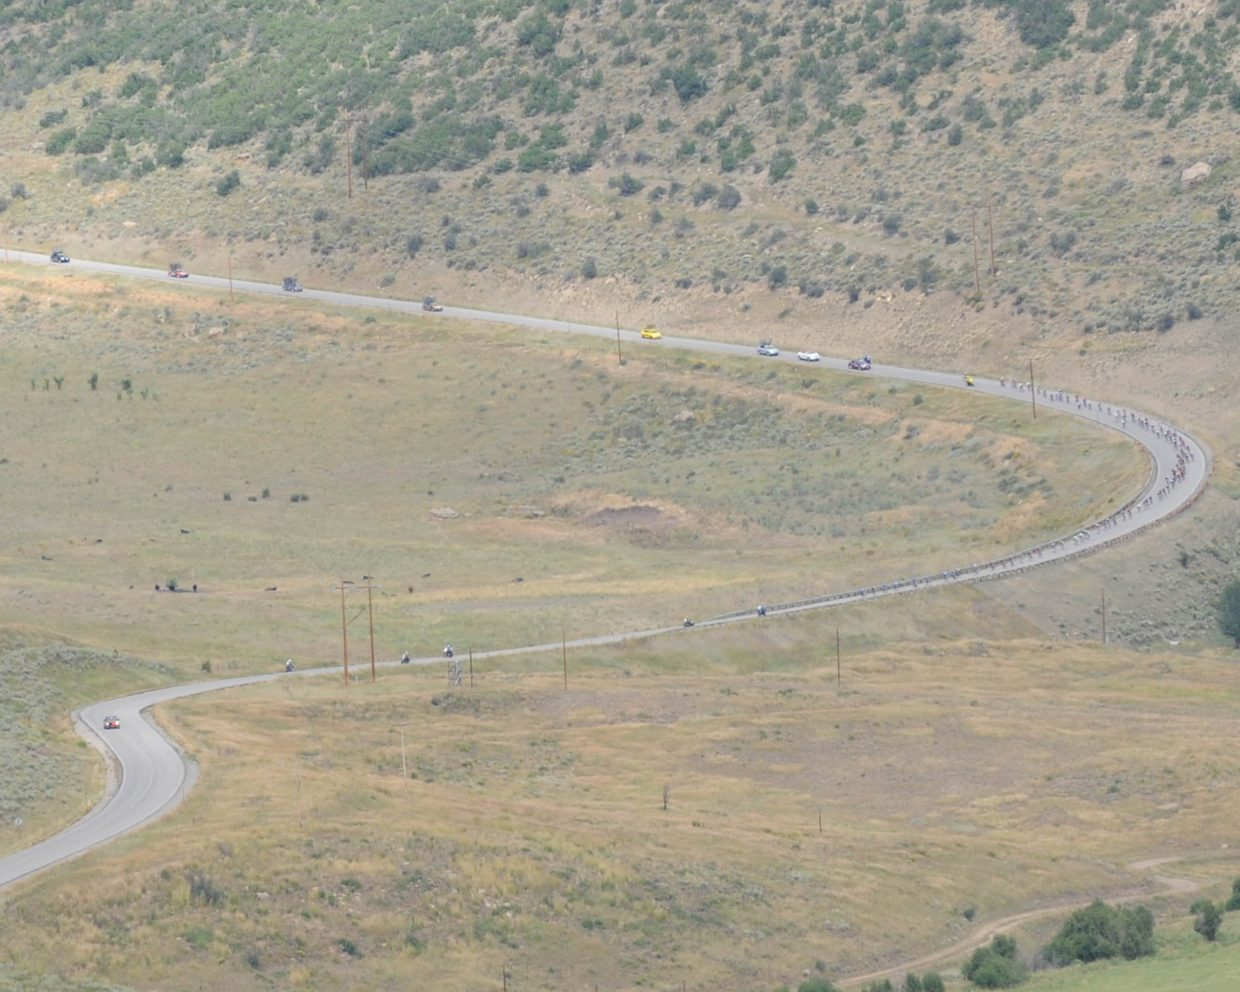 Peloton approaching the second sister on Routt County Road 27. Submitted by: Lee McShane Cox